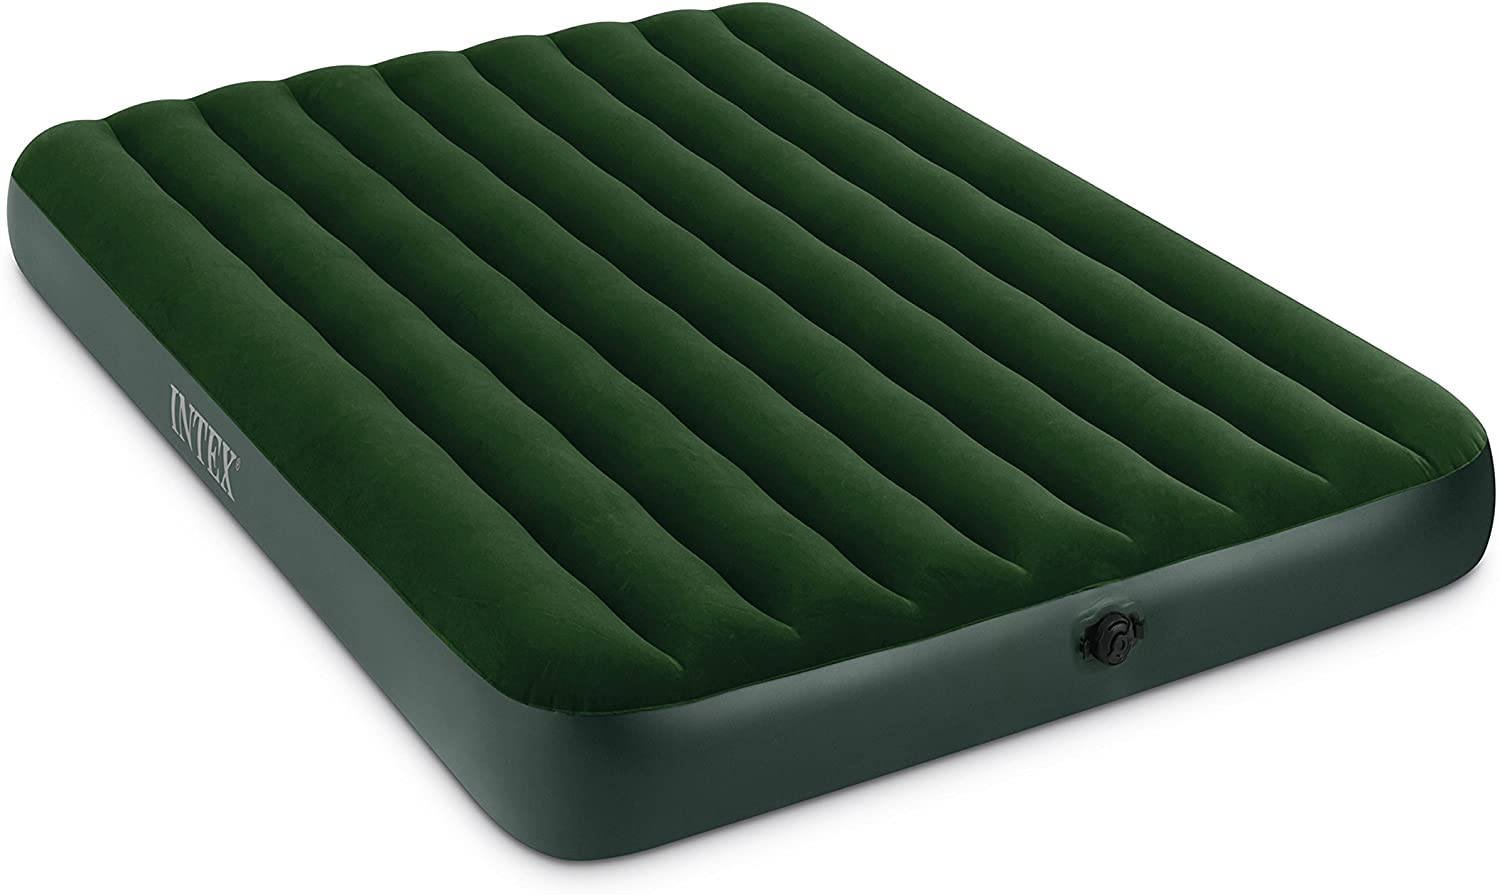 Intex Prestige Downy Airbed Kit with Hand Held Battery Pump, Queen: Sports & Outdoors